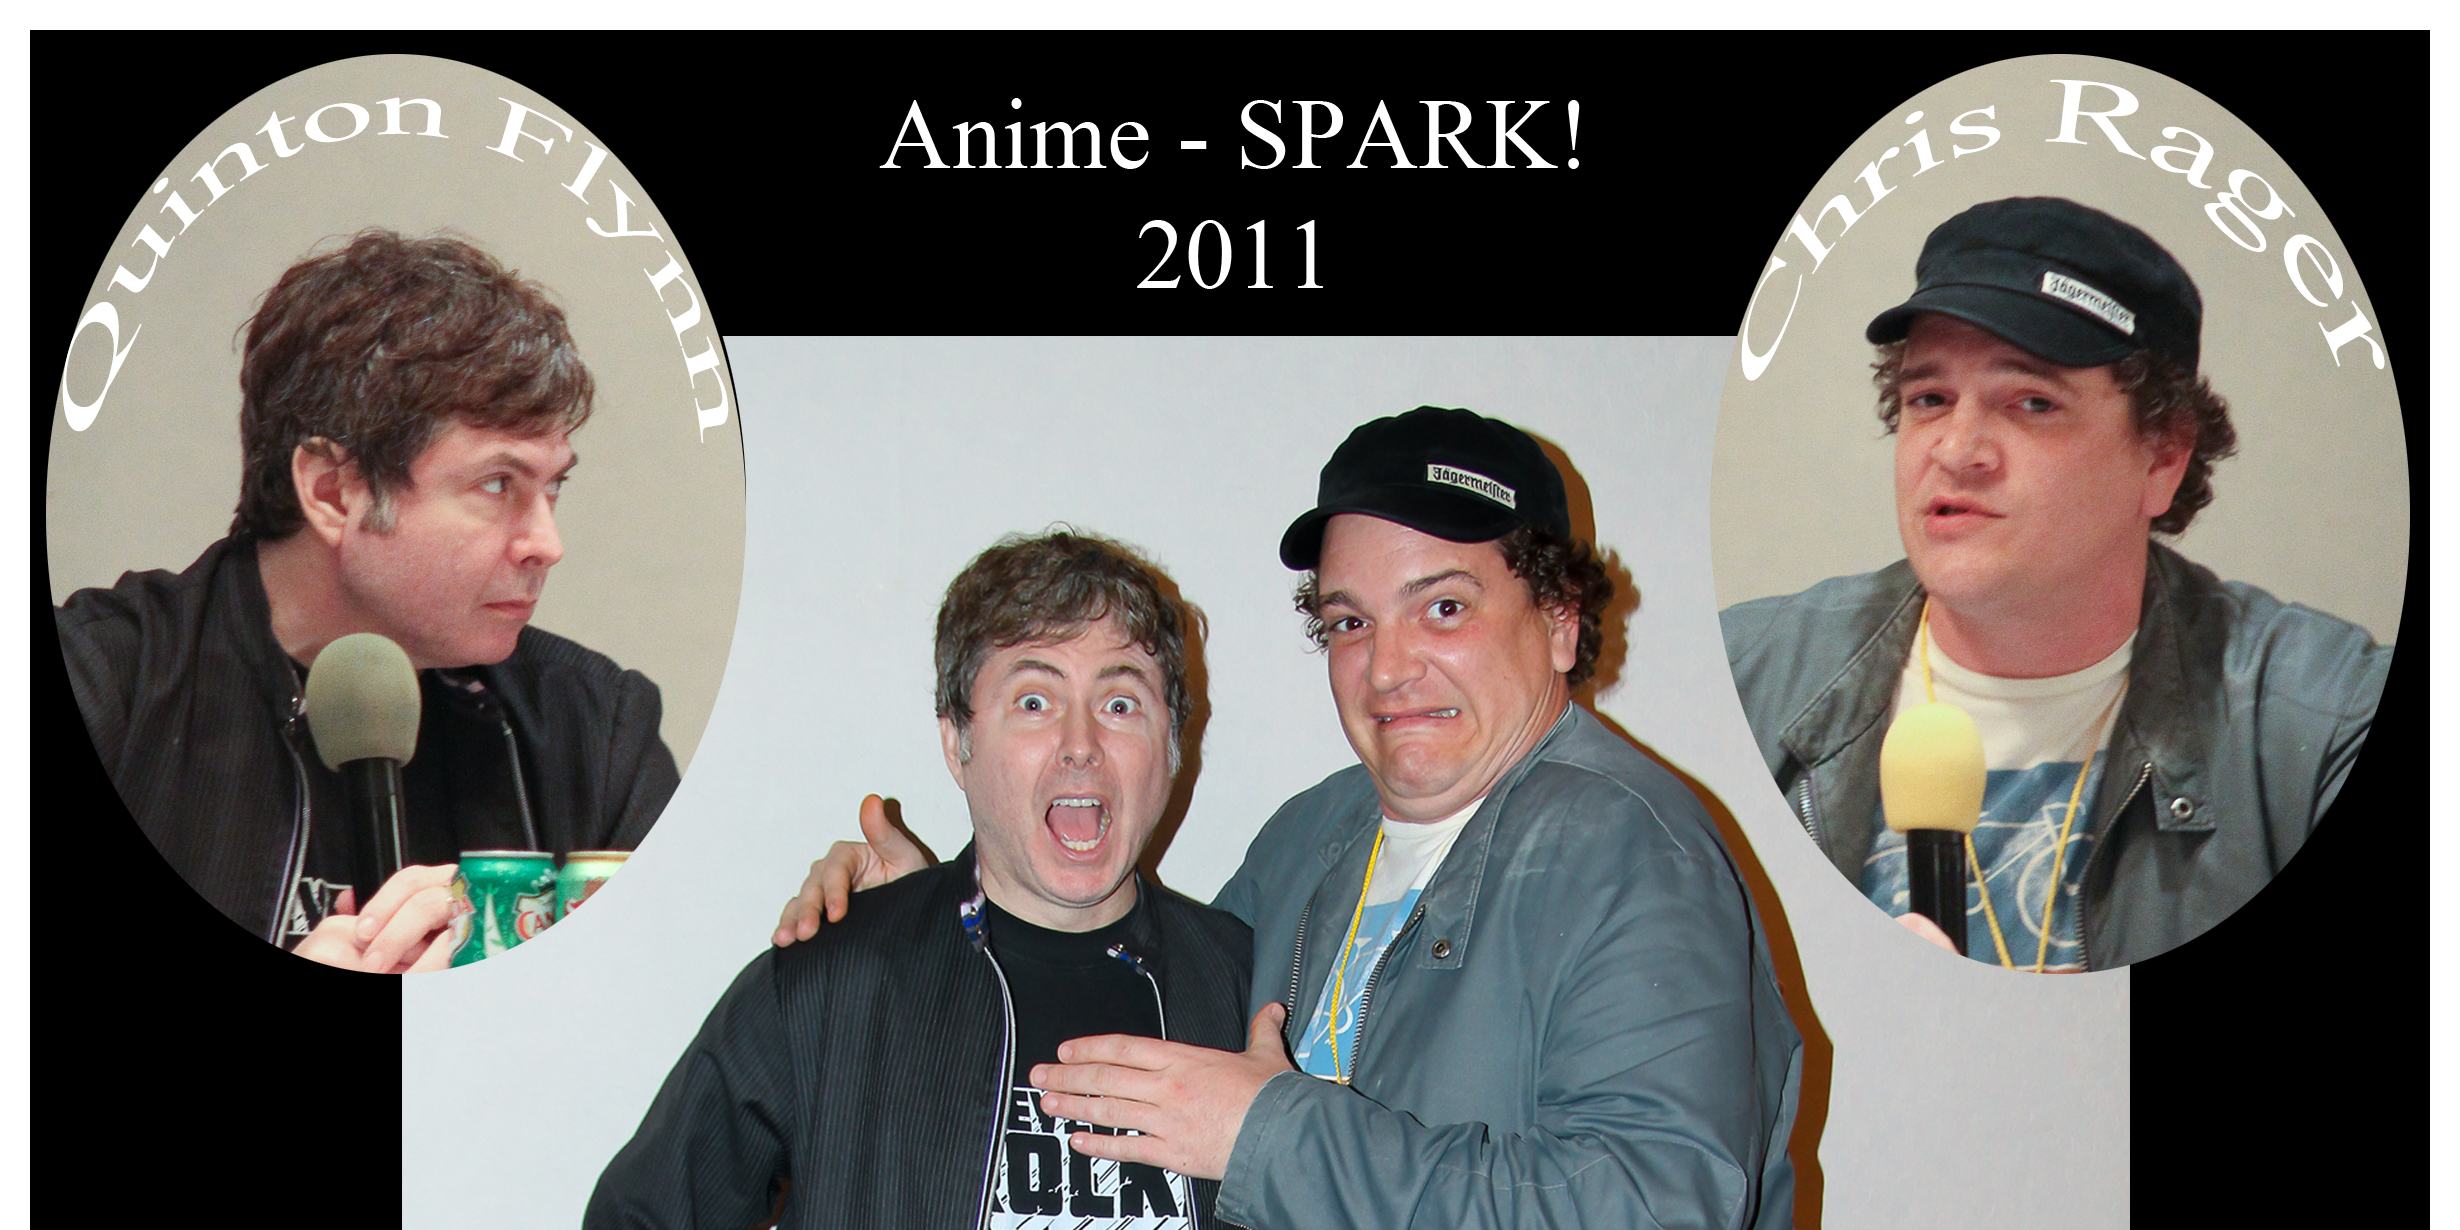 Quinton Flynn and Chris Rager at Anime - SPARK!